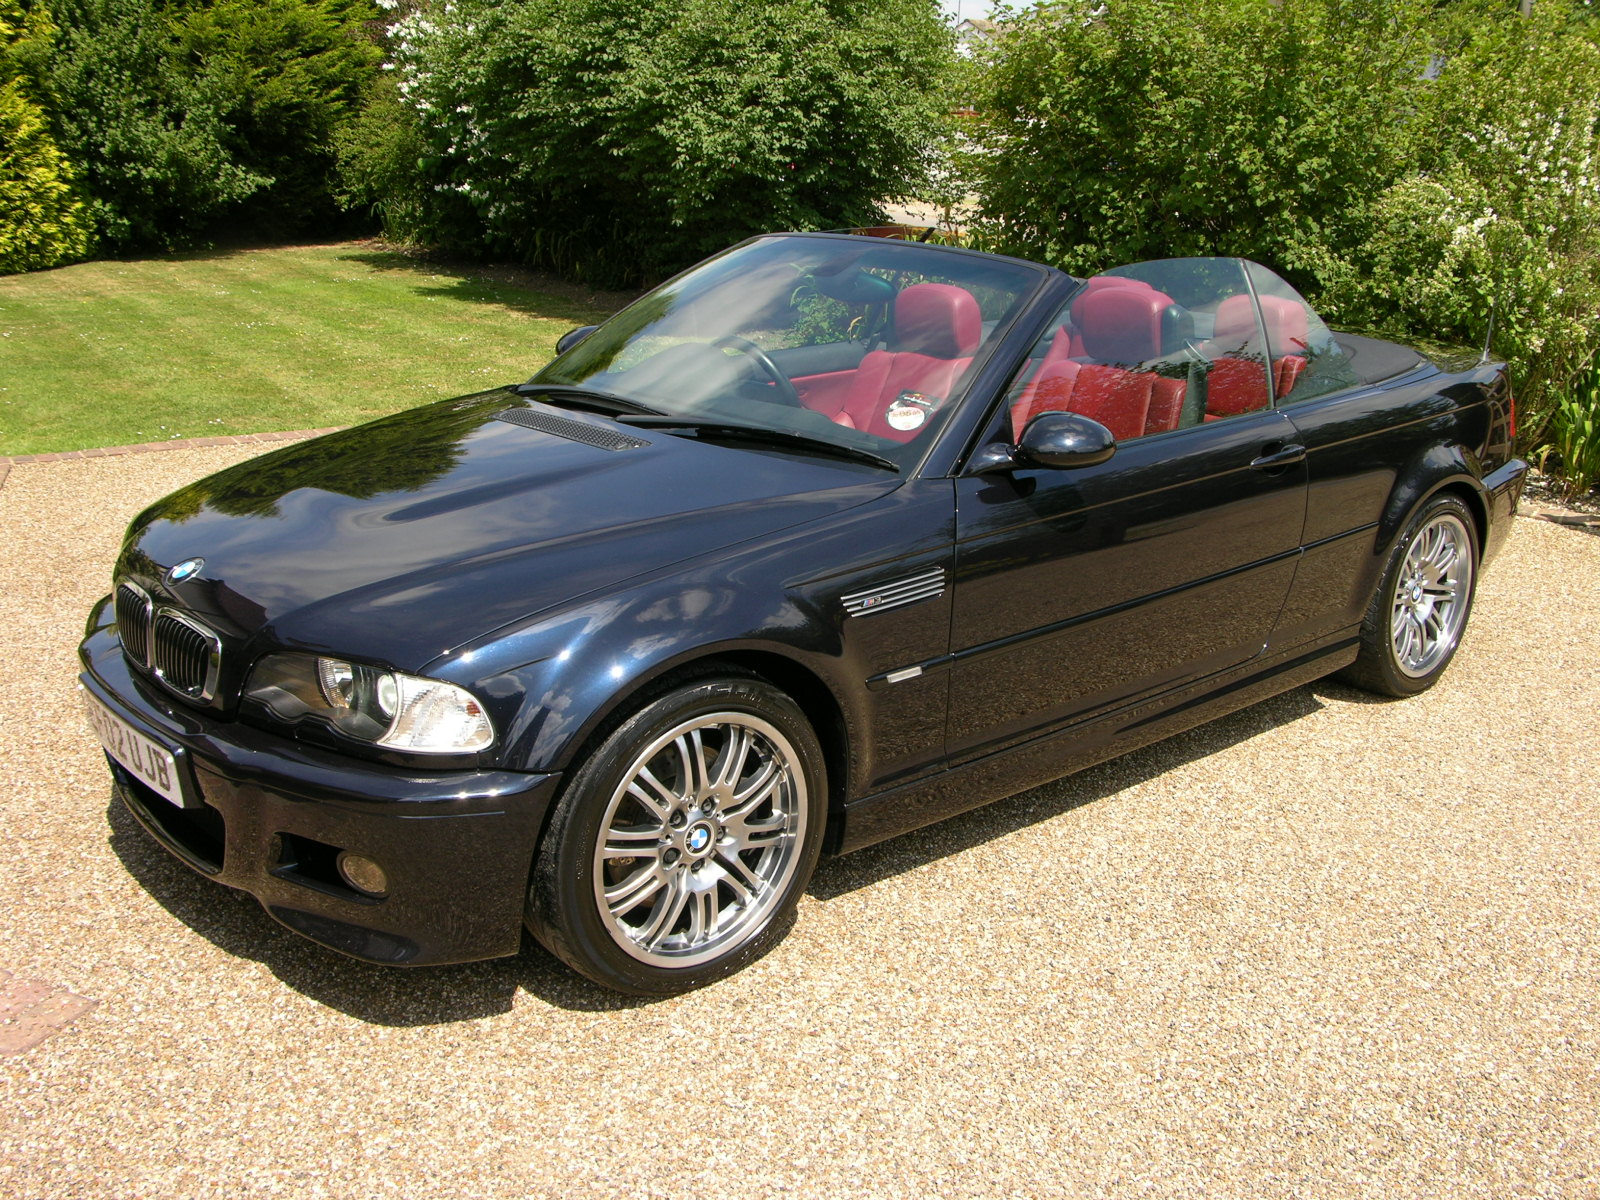 File Bmw M3 E46 Convertible Flickr The Car Spy 17 Jpg Wikimedia Commons